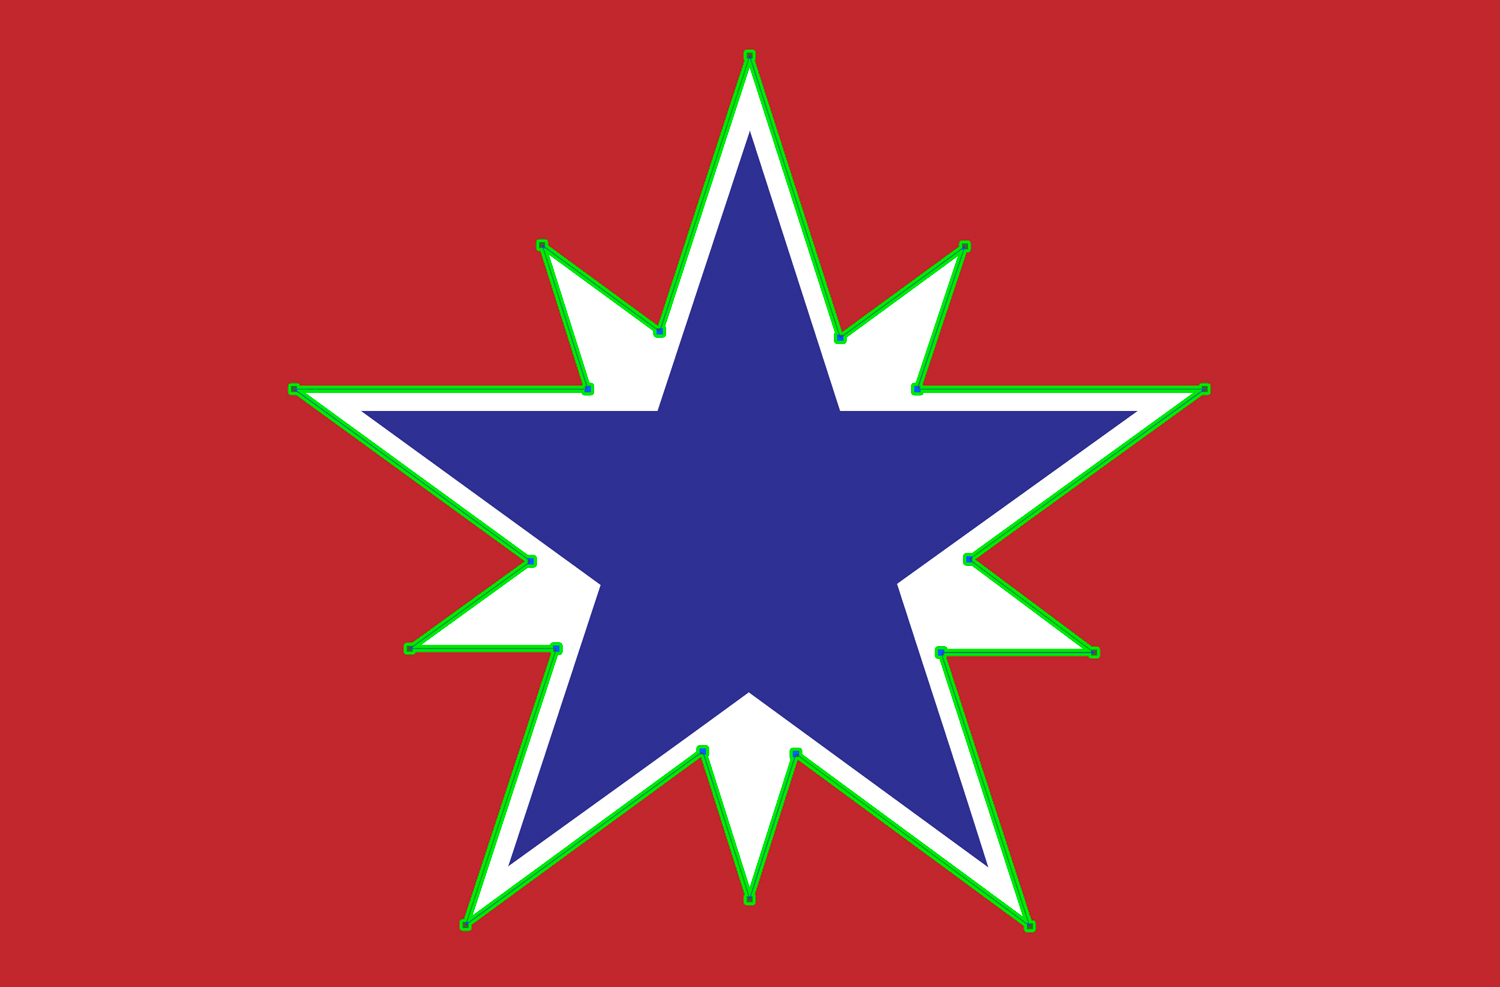 A blue star outlined in white on a red background